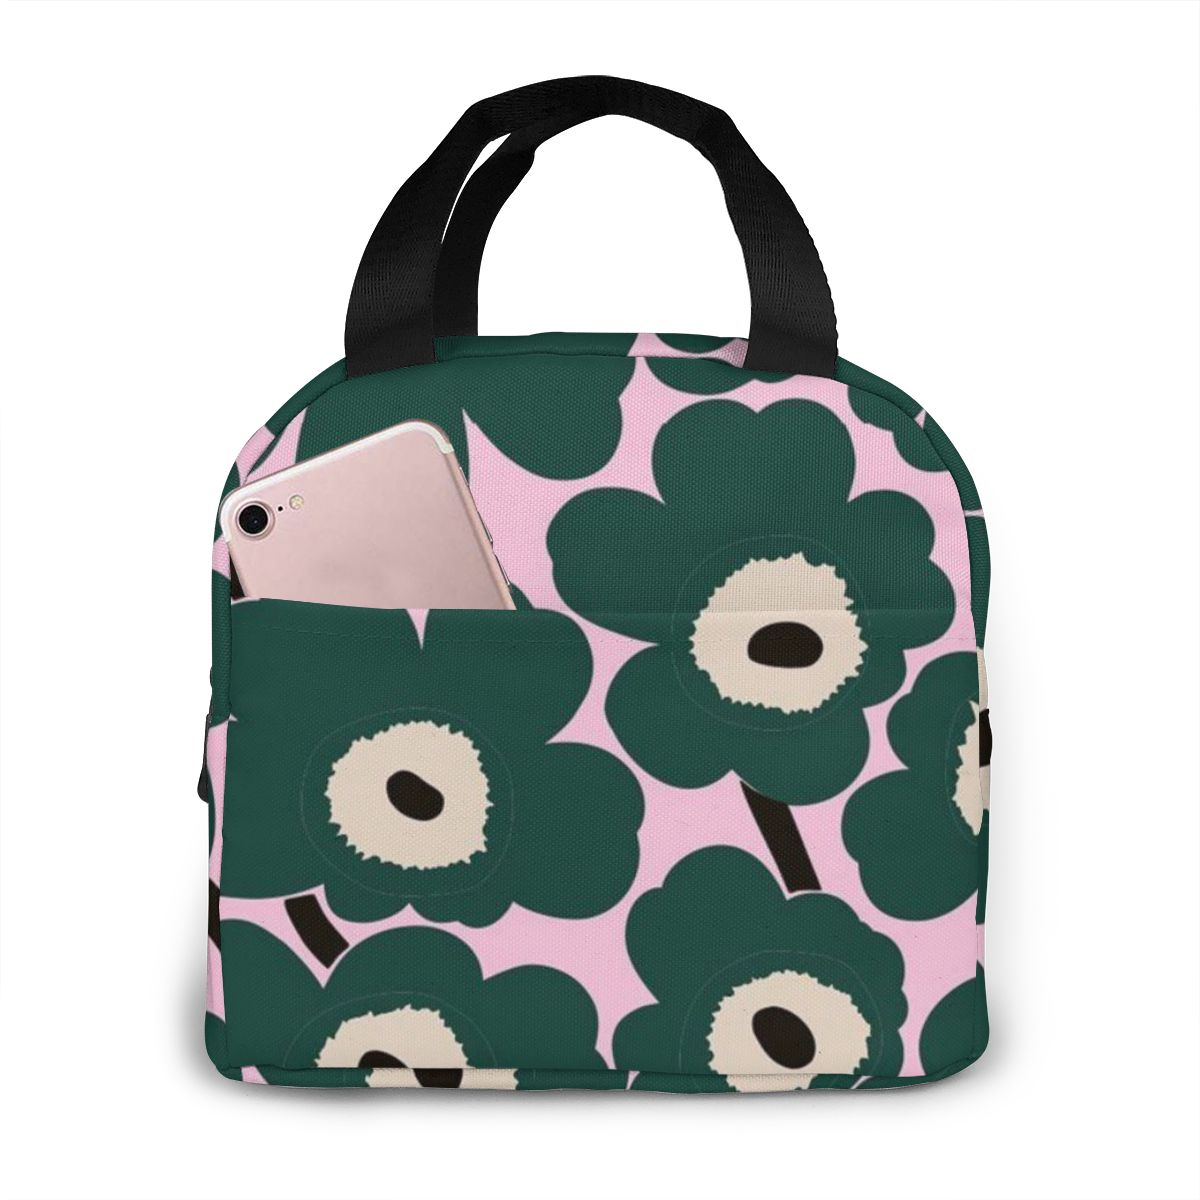 NOISYDESIGNS Poppy Design Print New Thermal Insulated Lunch Box Cooler Handbag Bento Pouch Dinner School Food Portable Bag